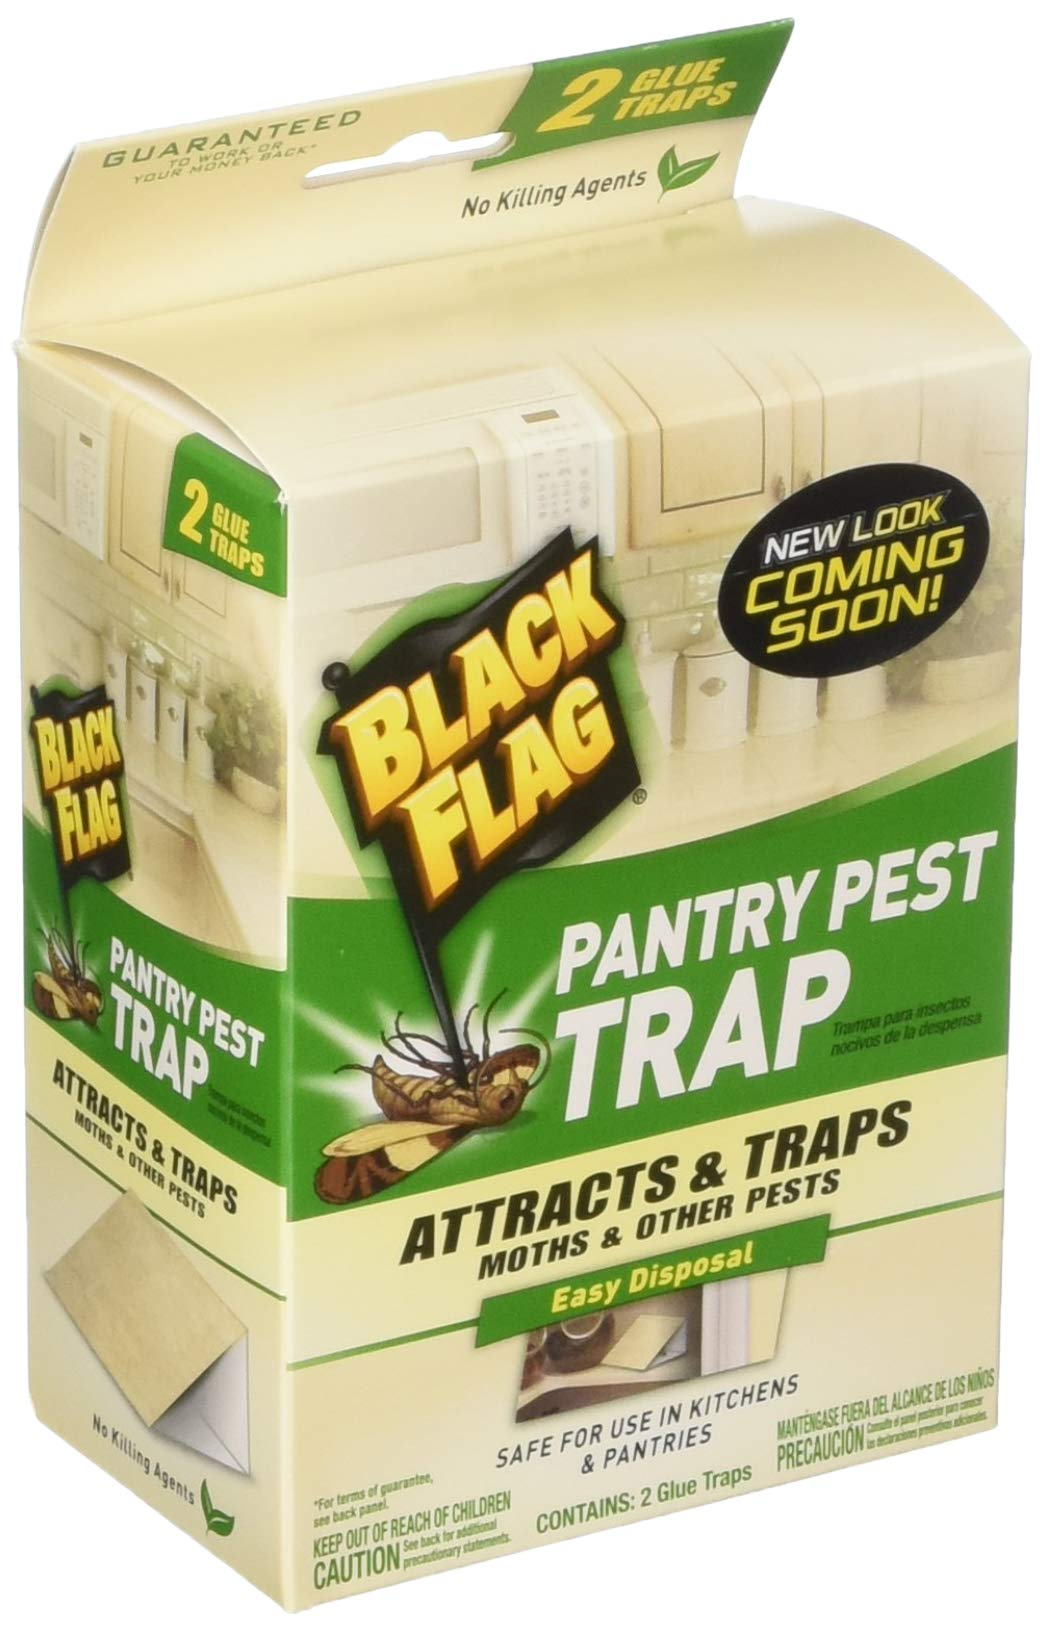 Black Flag Pantry Pest Traps - 8 Total(4 Packages with 2 Traps Each) by Black Flag